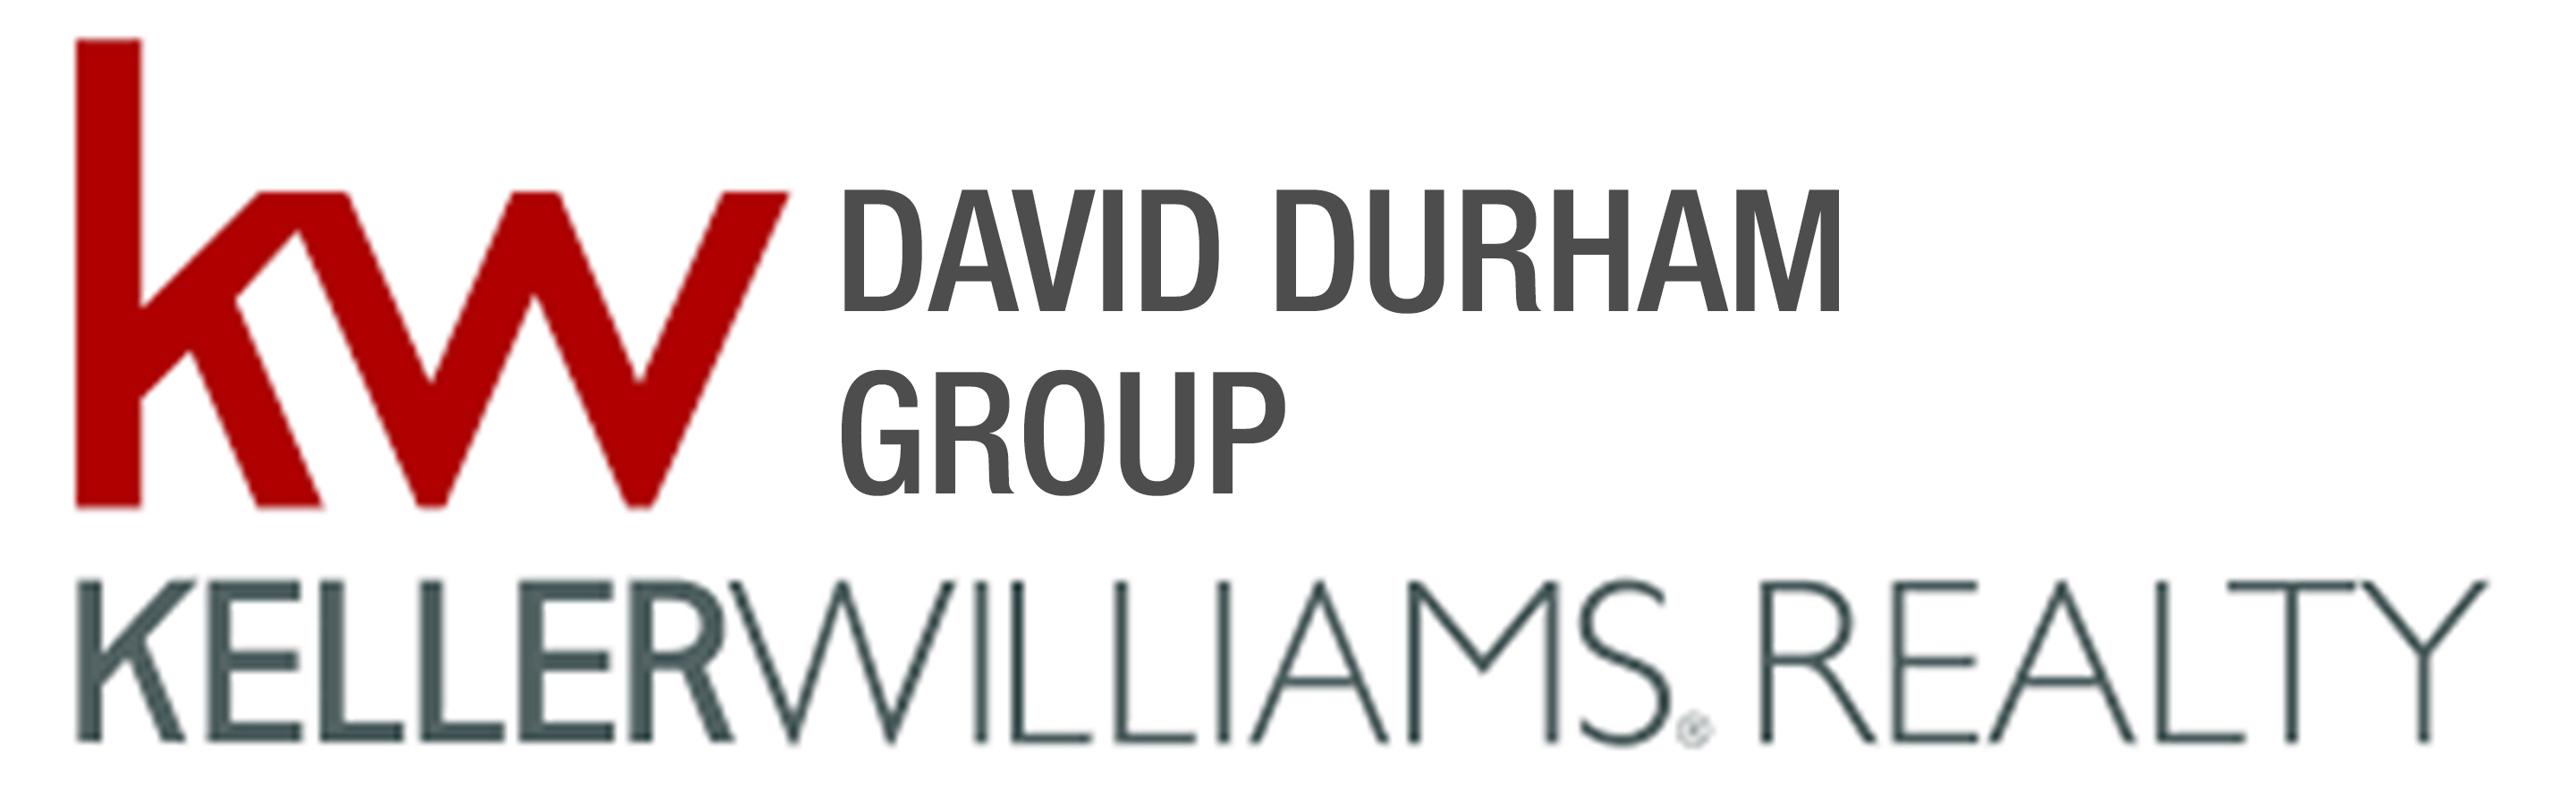 David Durham Group